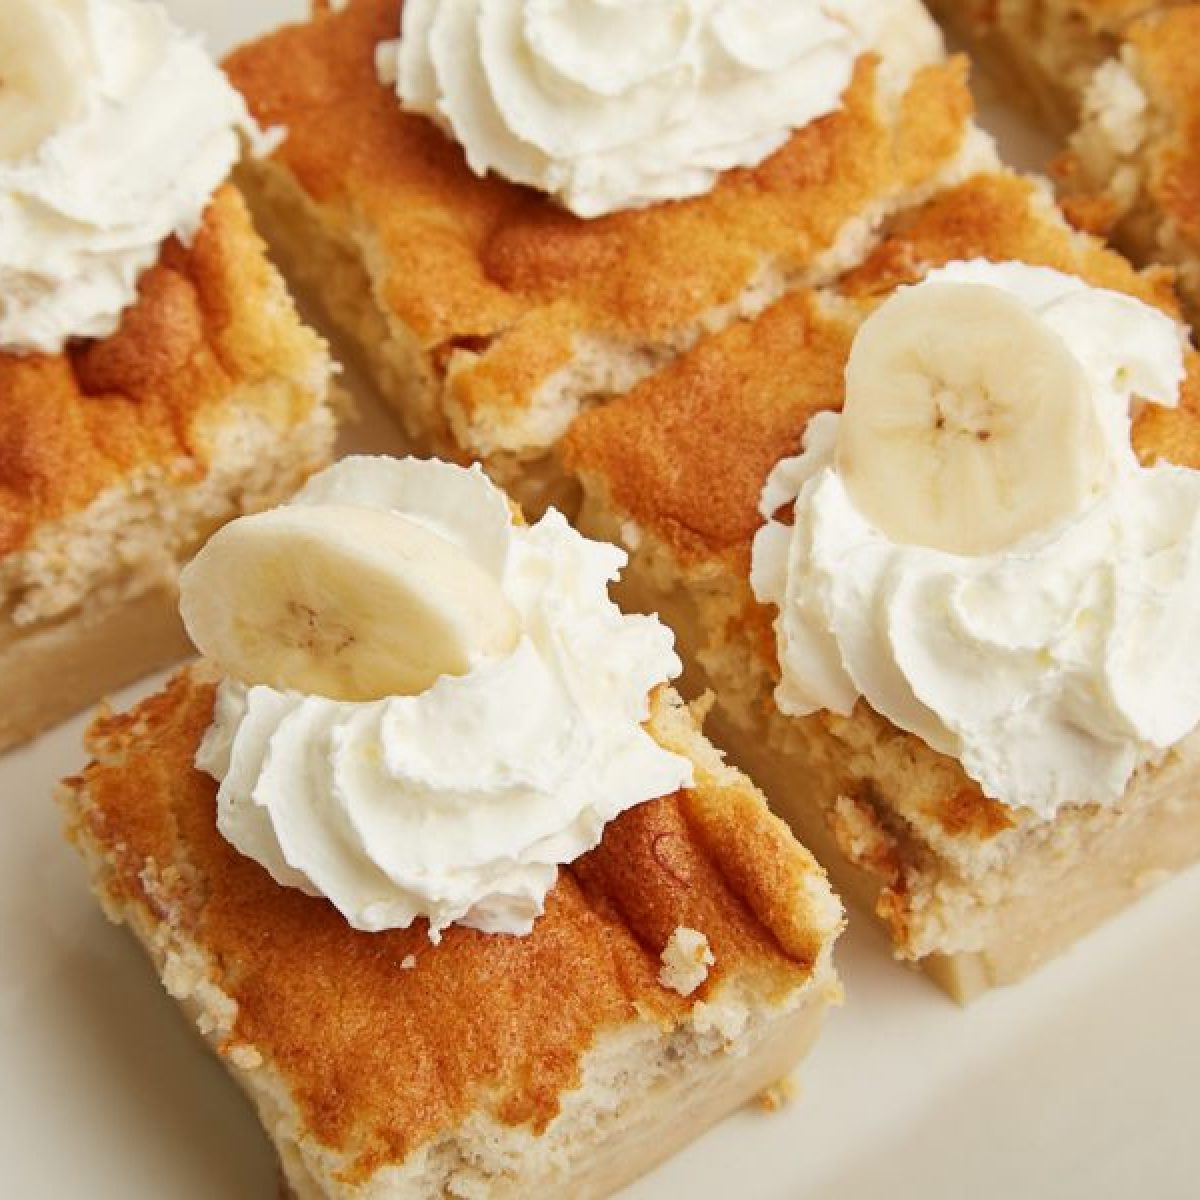 Banana Magic Cake The Recipe To Make A Delicious Dessert